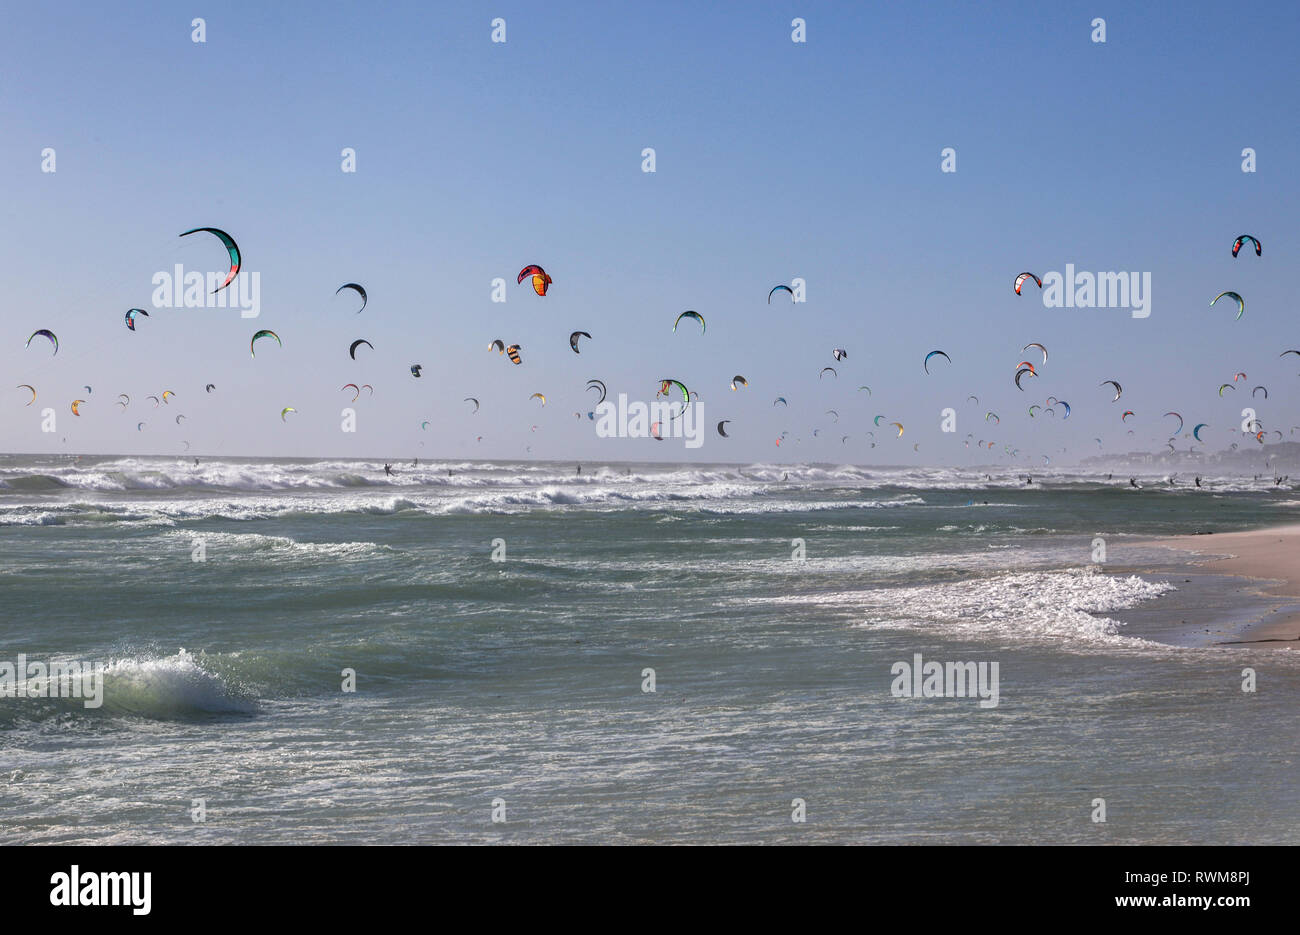 Large group of kite surfers mid air over sea, Cape Town, Western Cape, South Africa - Stock Image